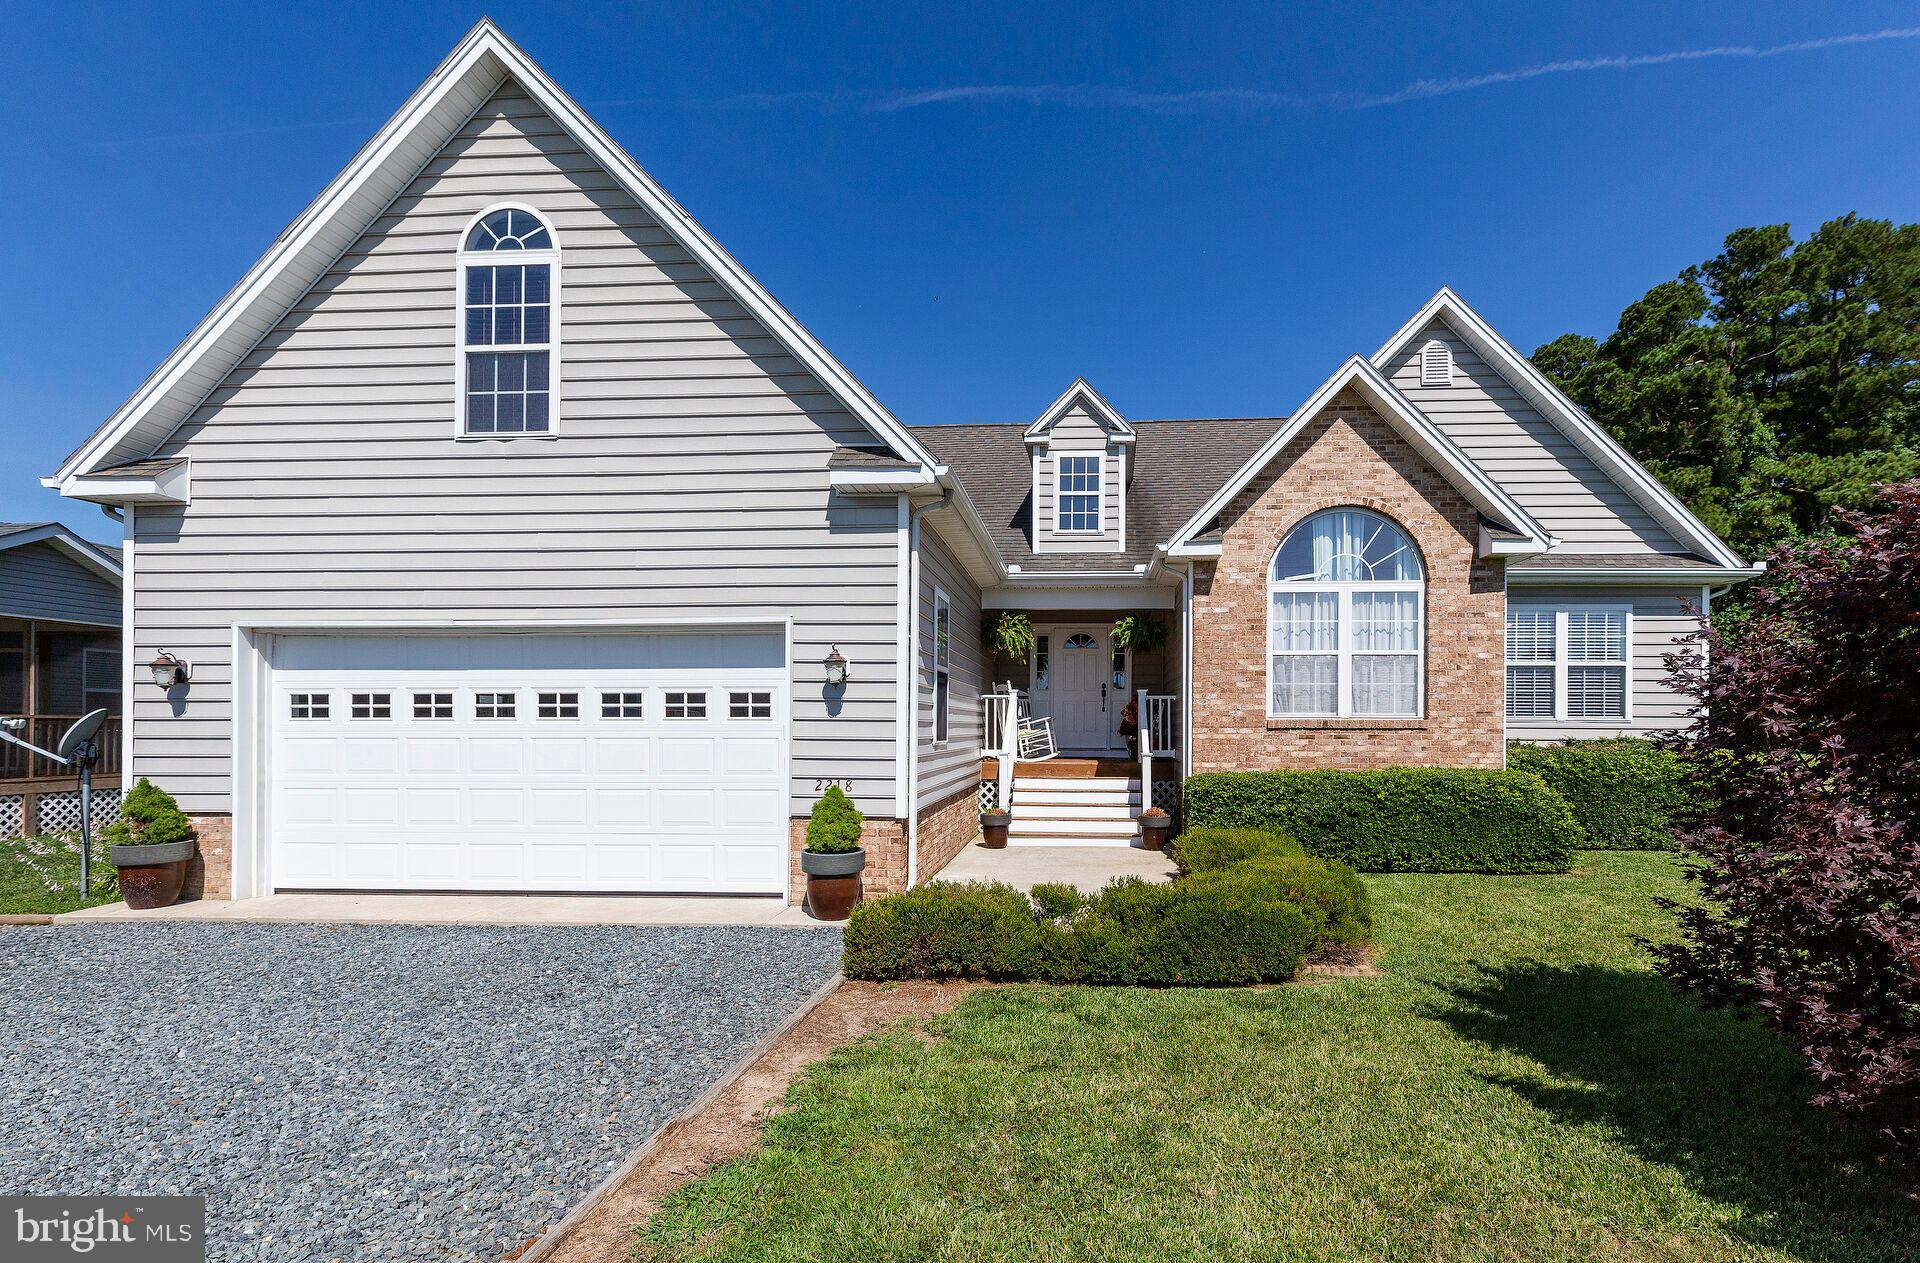 2218 CAPTAINS CORRIDOR, GREENBACKVILLE, VA 23356